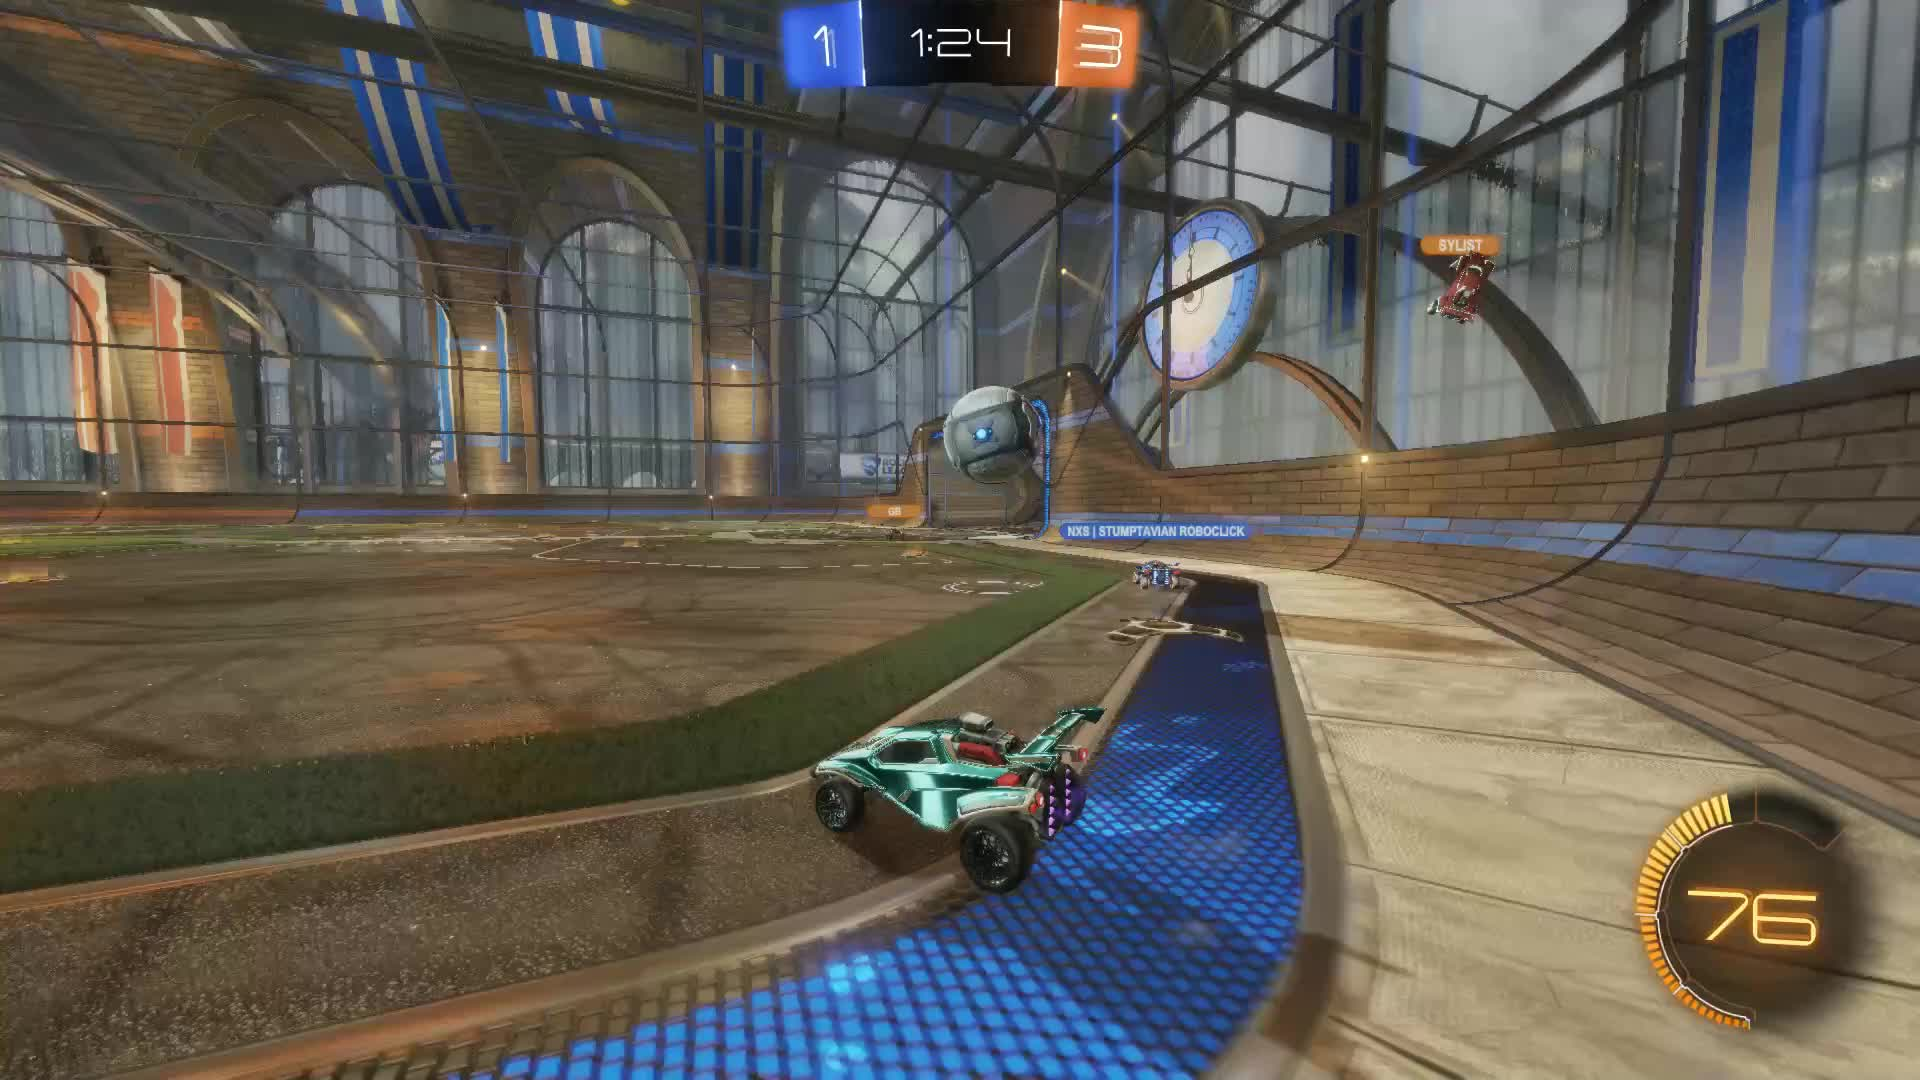 Assist, Gif Your Game, GifYourGame, Mako, Rocket League, RocketLeague, Assist 4: Mako GIFs